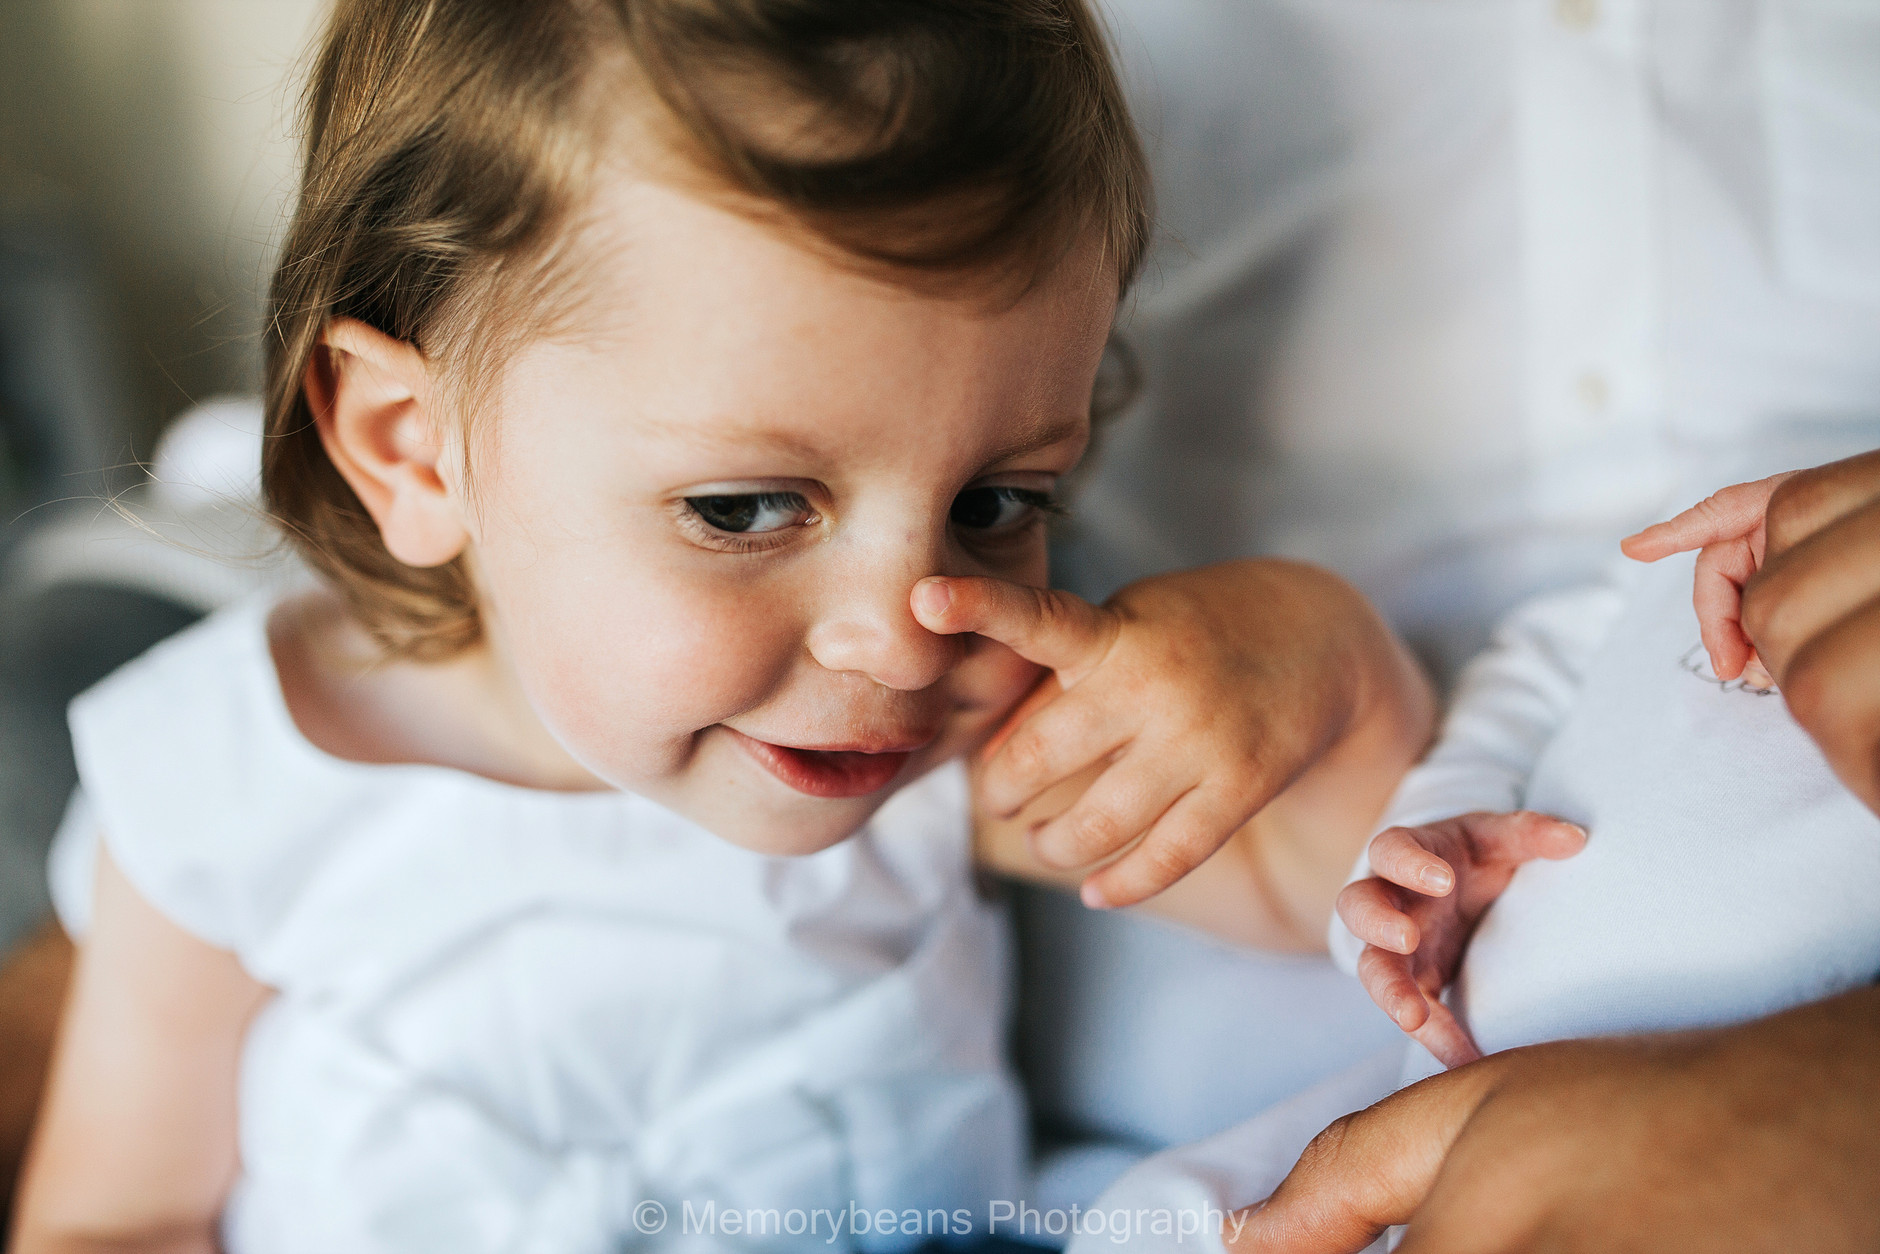 Toddler touching her nose and smiling